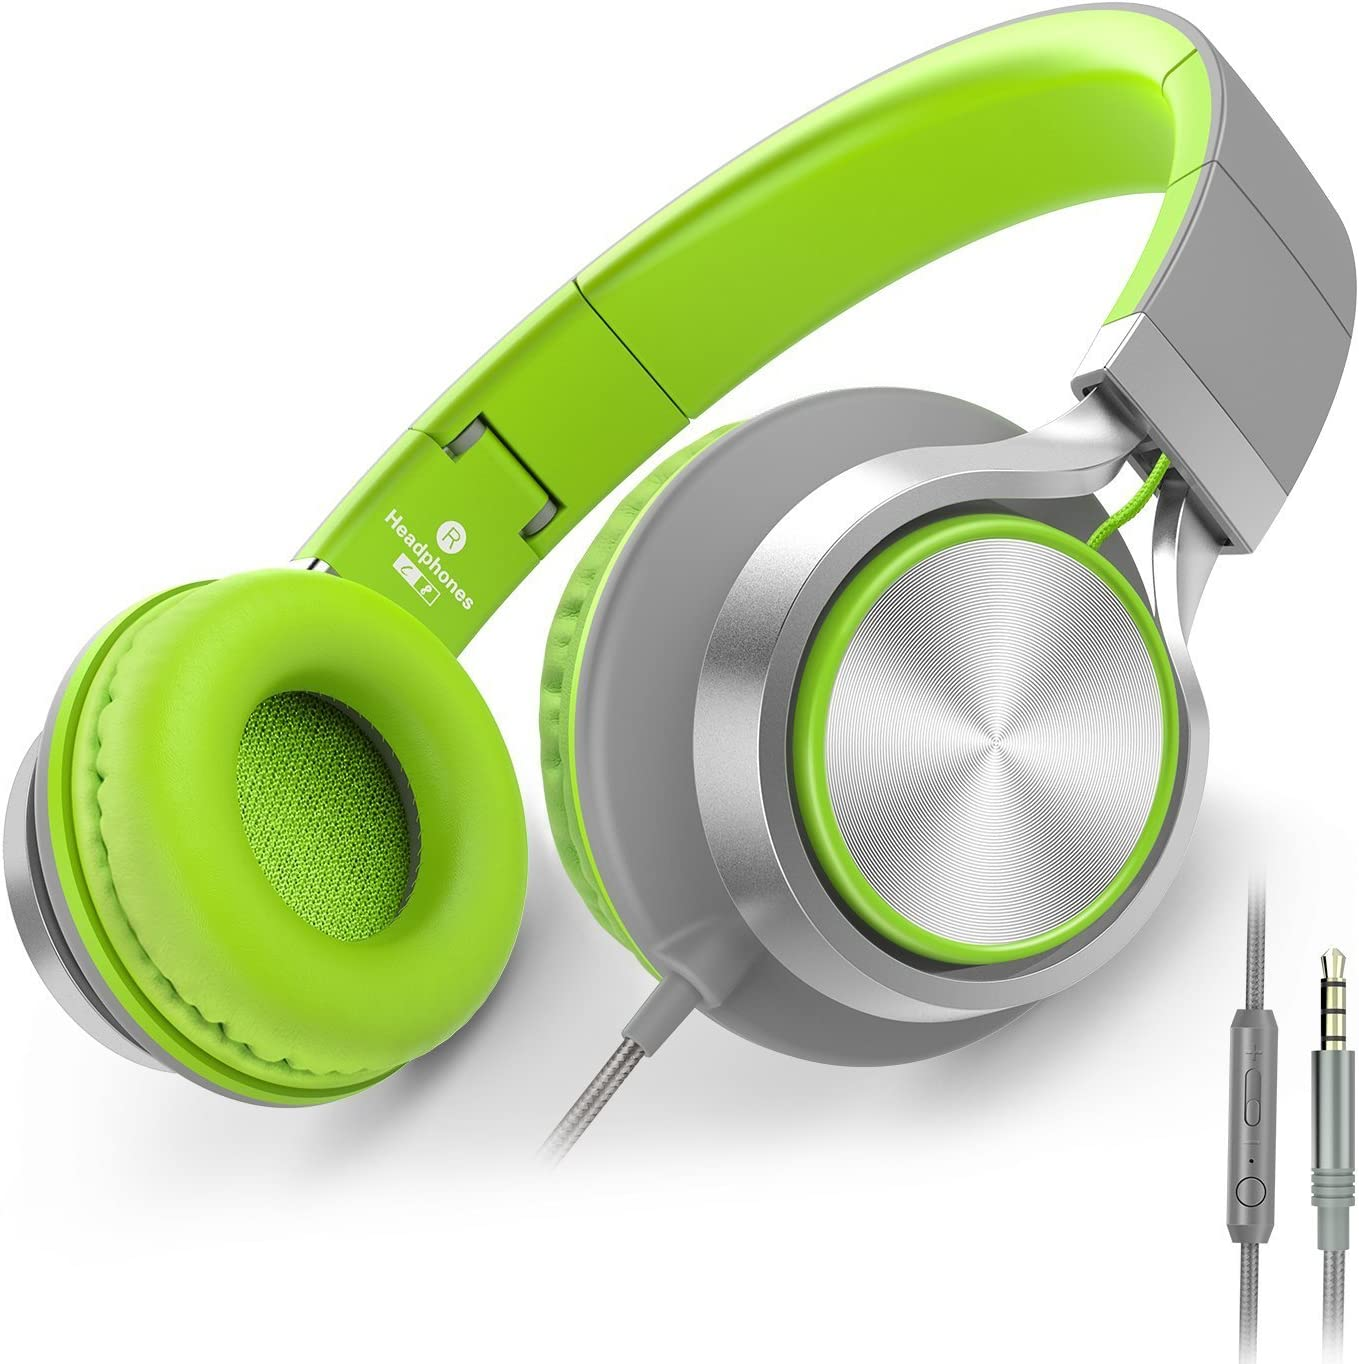 AILIHEN C8 Foldable Wired Headphones with Microphone and Volume Control for Cellphones Tablets Chromebook Smartphones Laptop Computer PC Mp3/4 (Gray/Green)